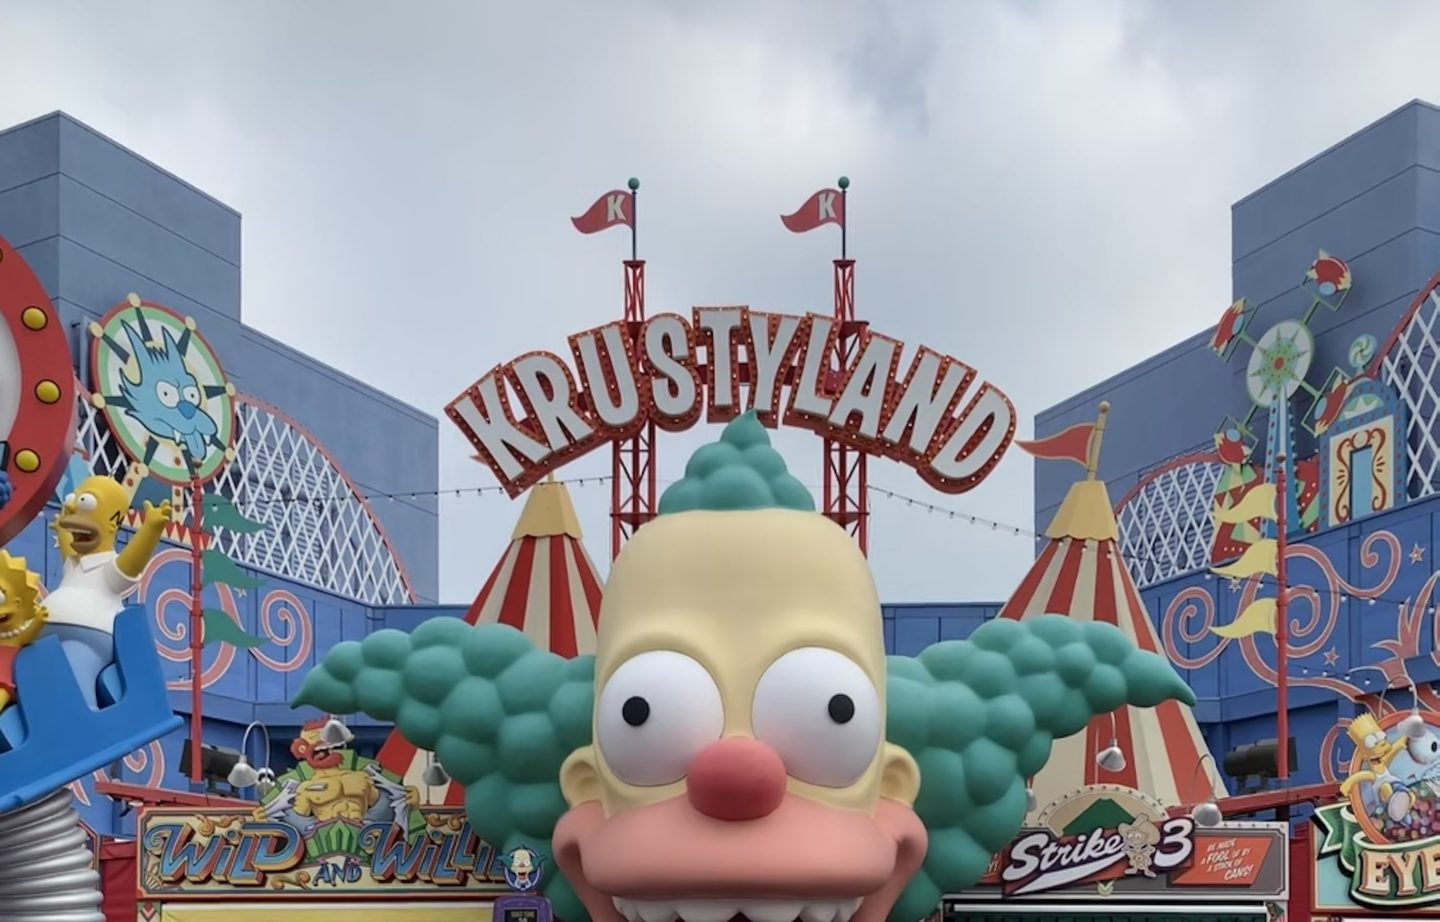 Universal Studios Hollywood: A Fun Day With The Stars